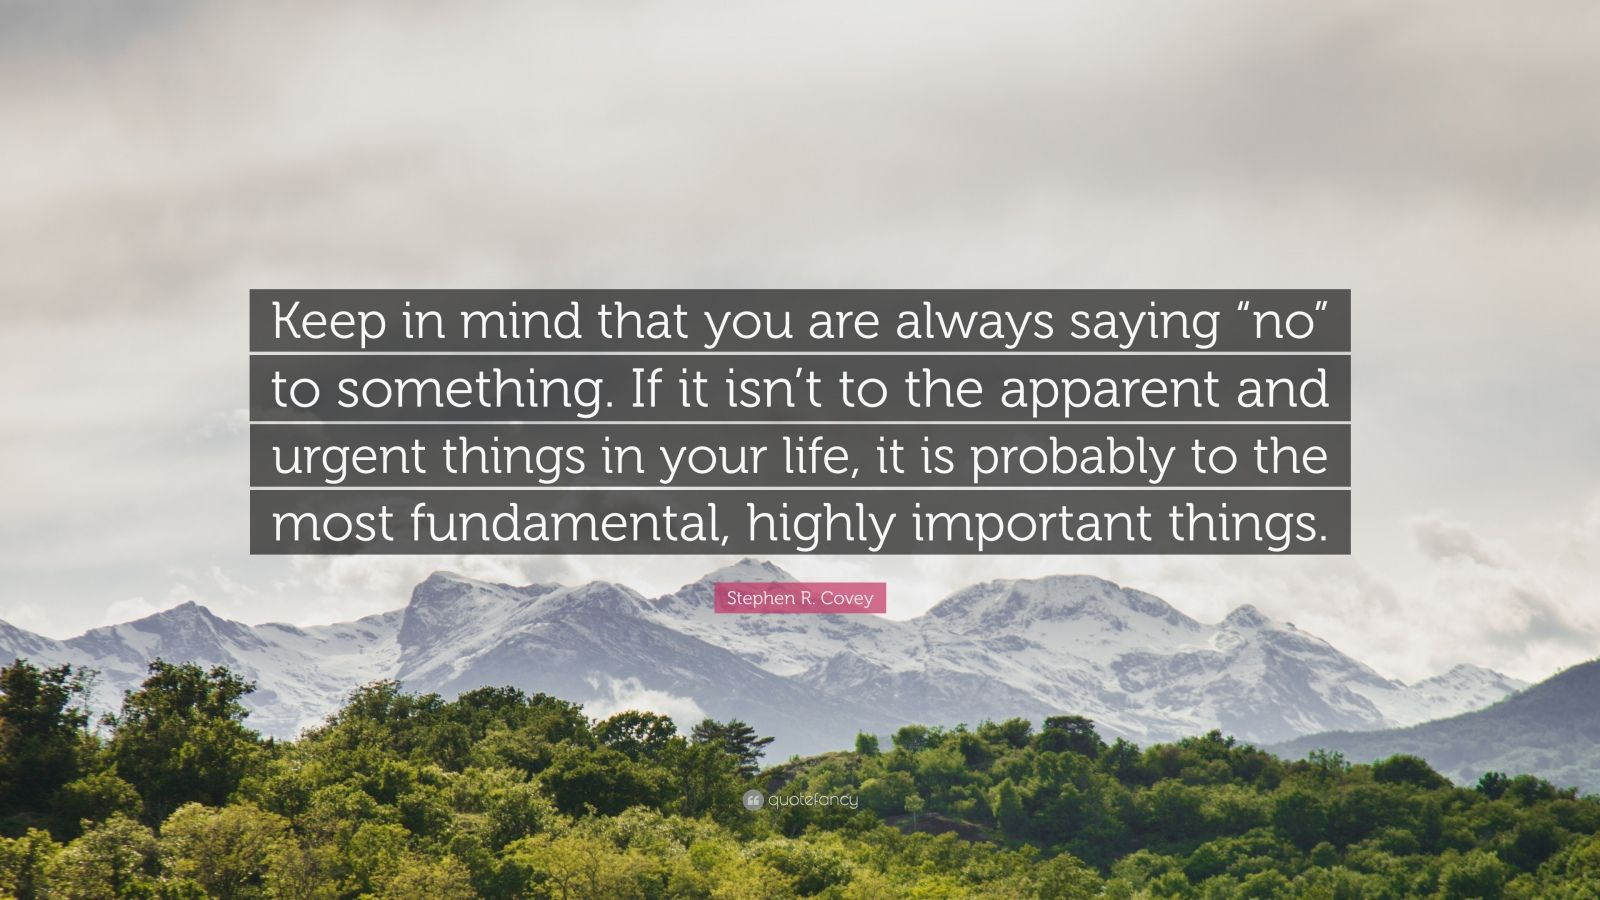 """Stephen R. Covey Quote: """"Keep in mind that you are always saying """"no"""" to something. If it isn't to the apparent and urgent things in your life, it is probably to the most fundamental, highly important things."""""""